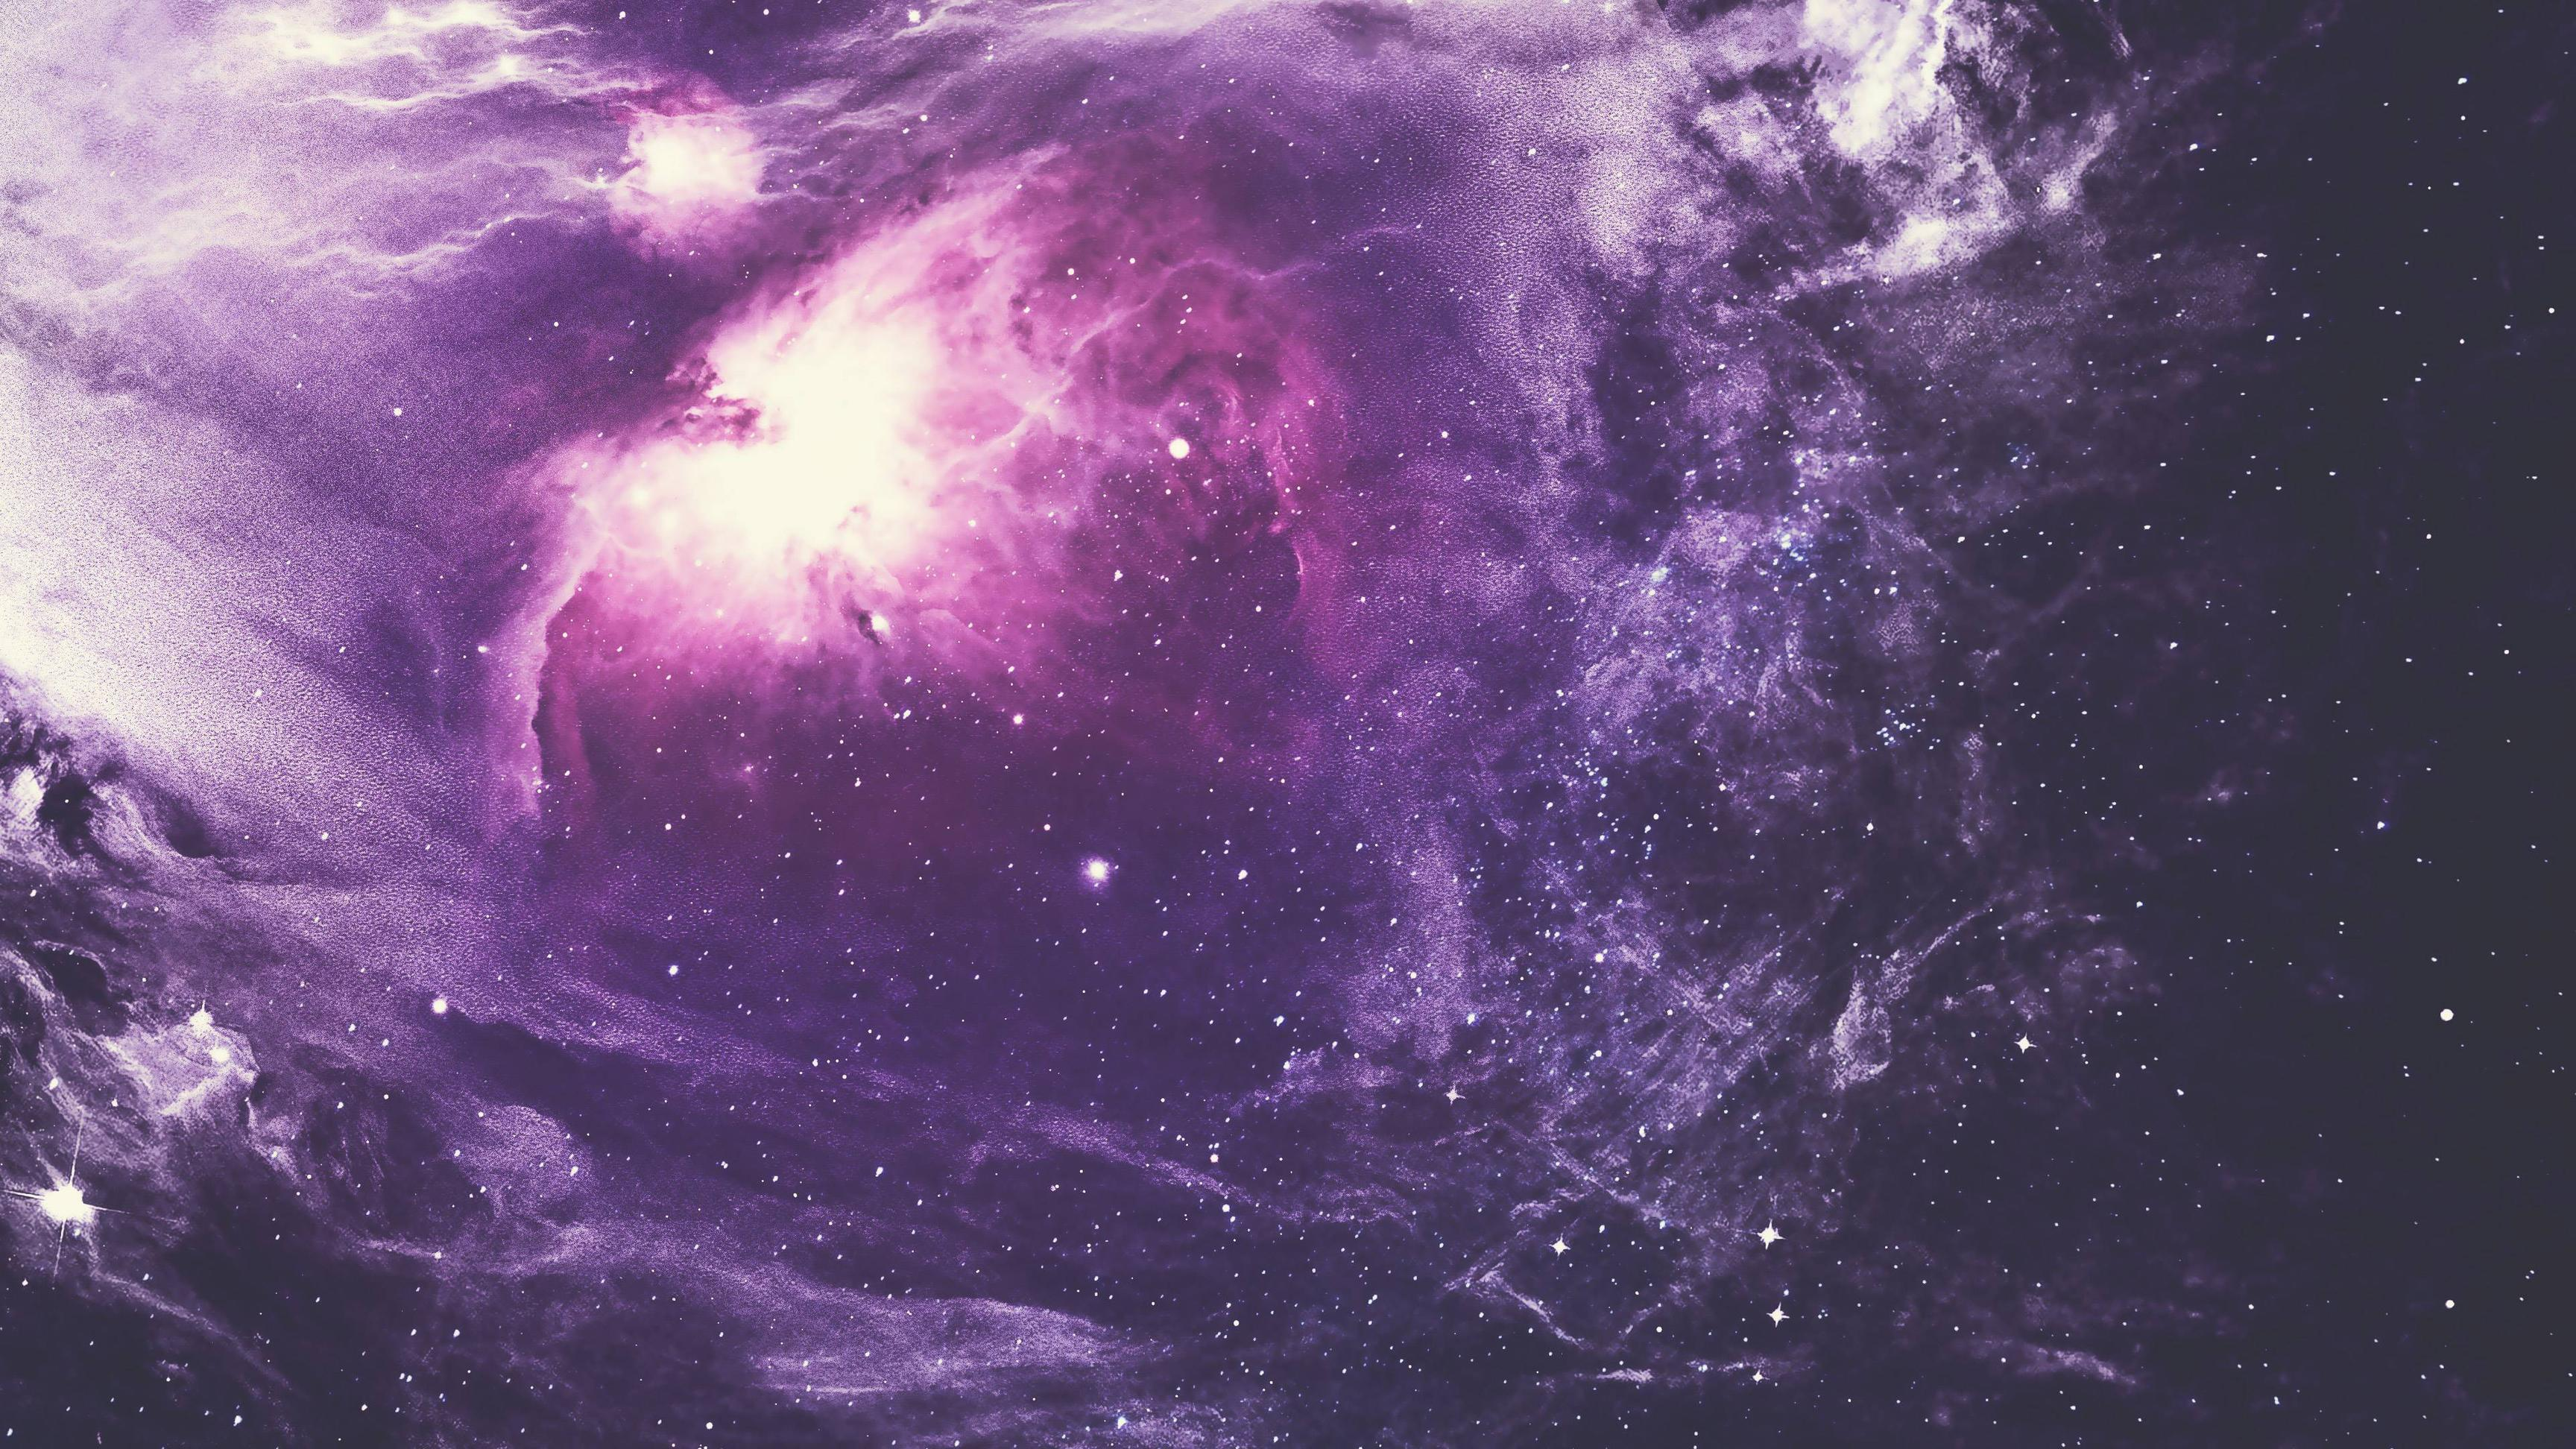 4k Wallpaper 3d 3840x2400 Purple Nebula 4k Hd Digital Universe 4k Wallpapers